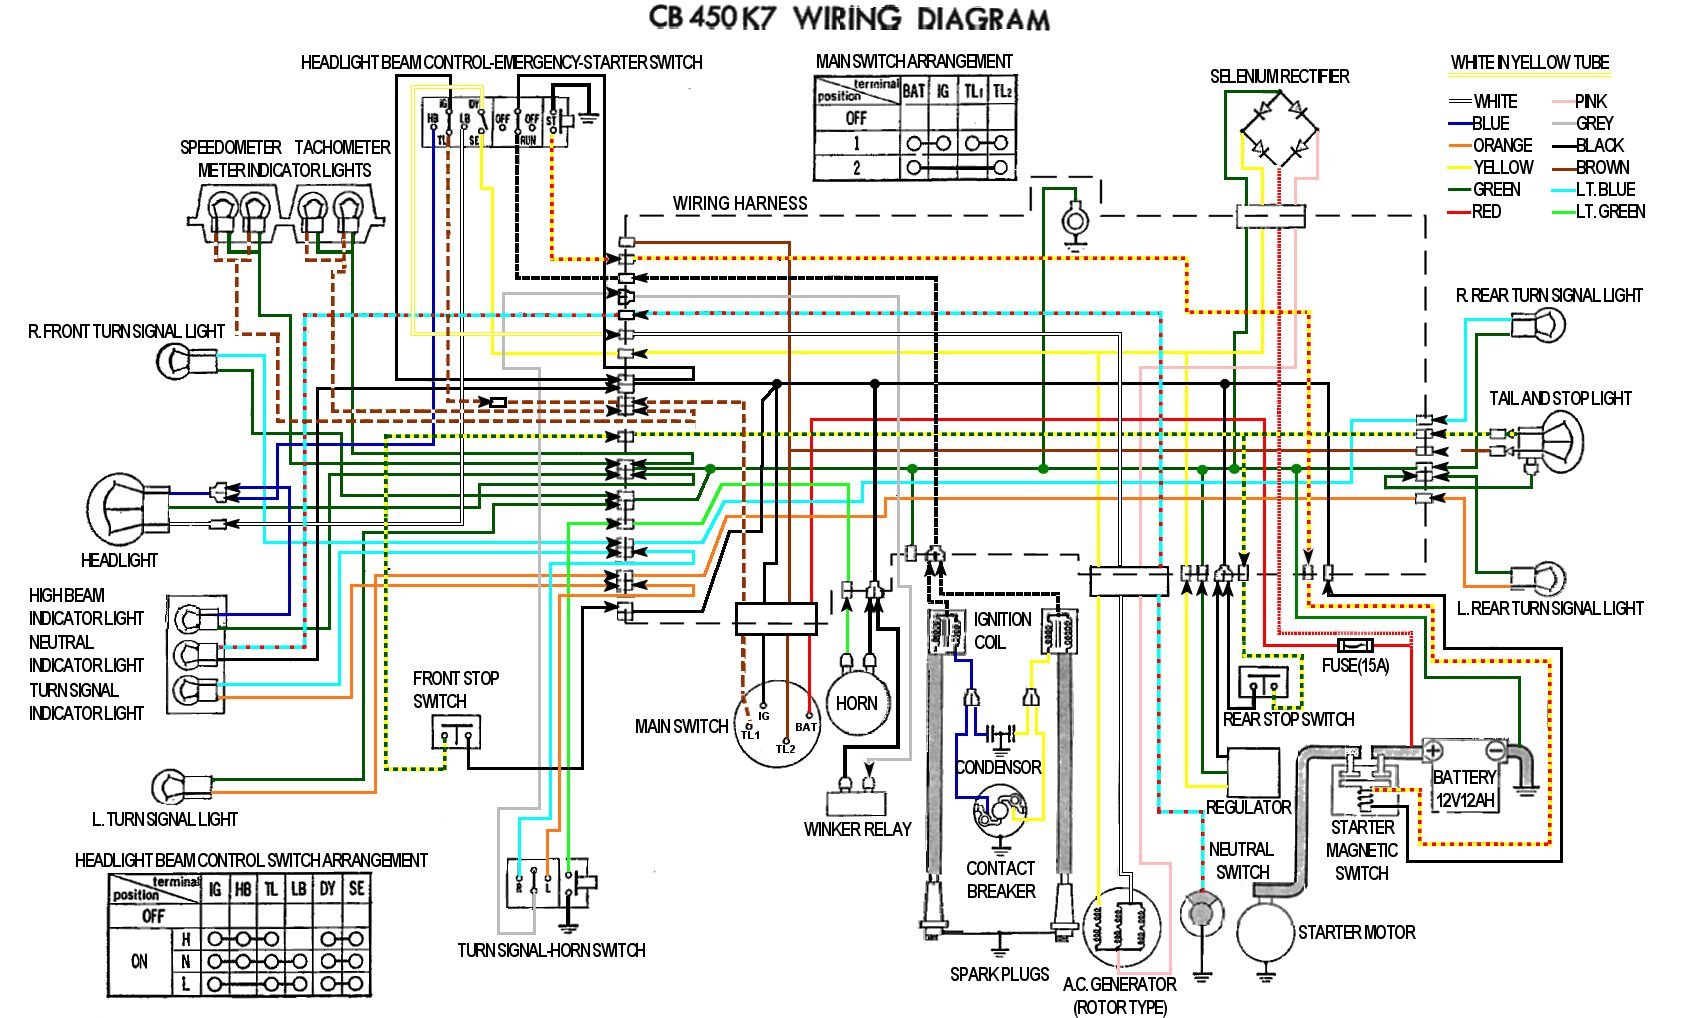 cb450 color wiring diagram (now corrected) wiring diagram colors